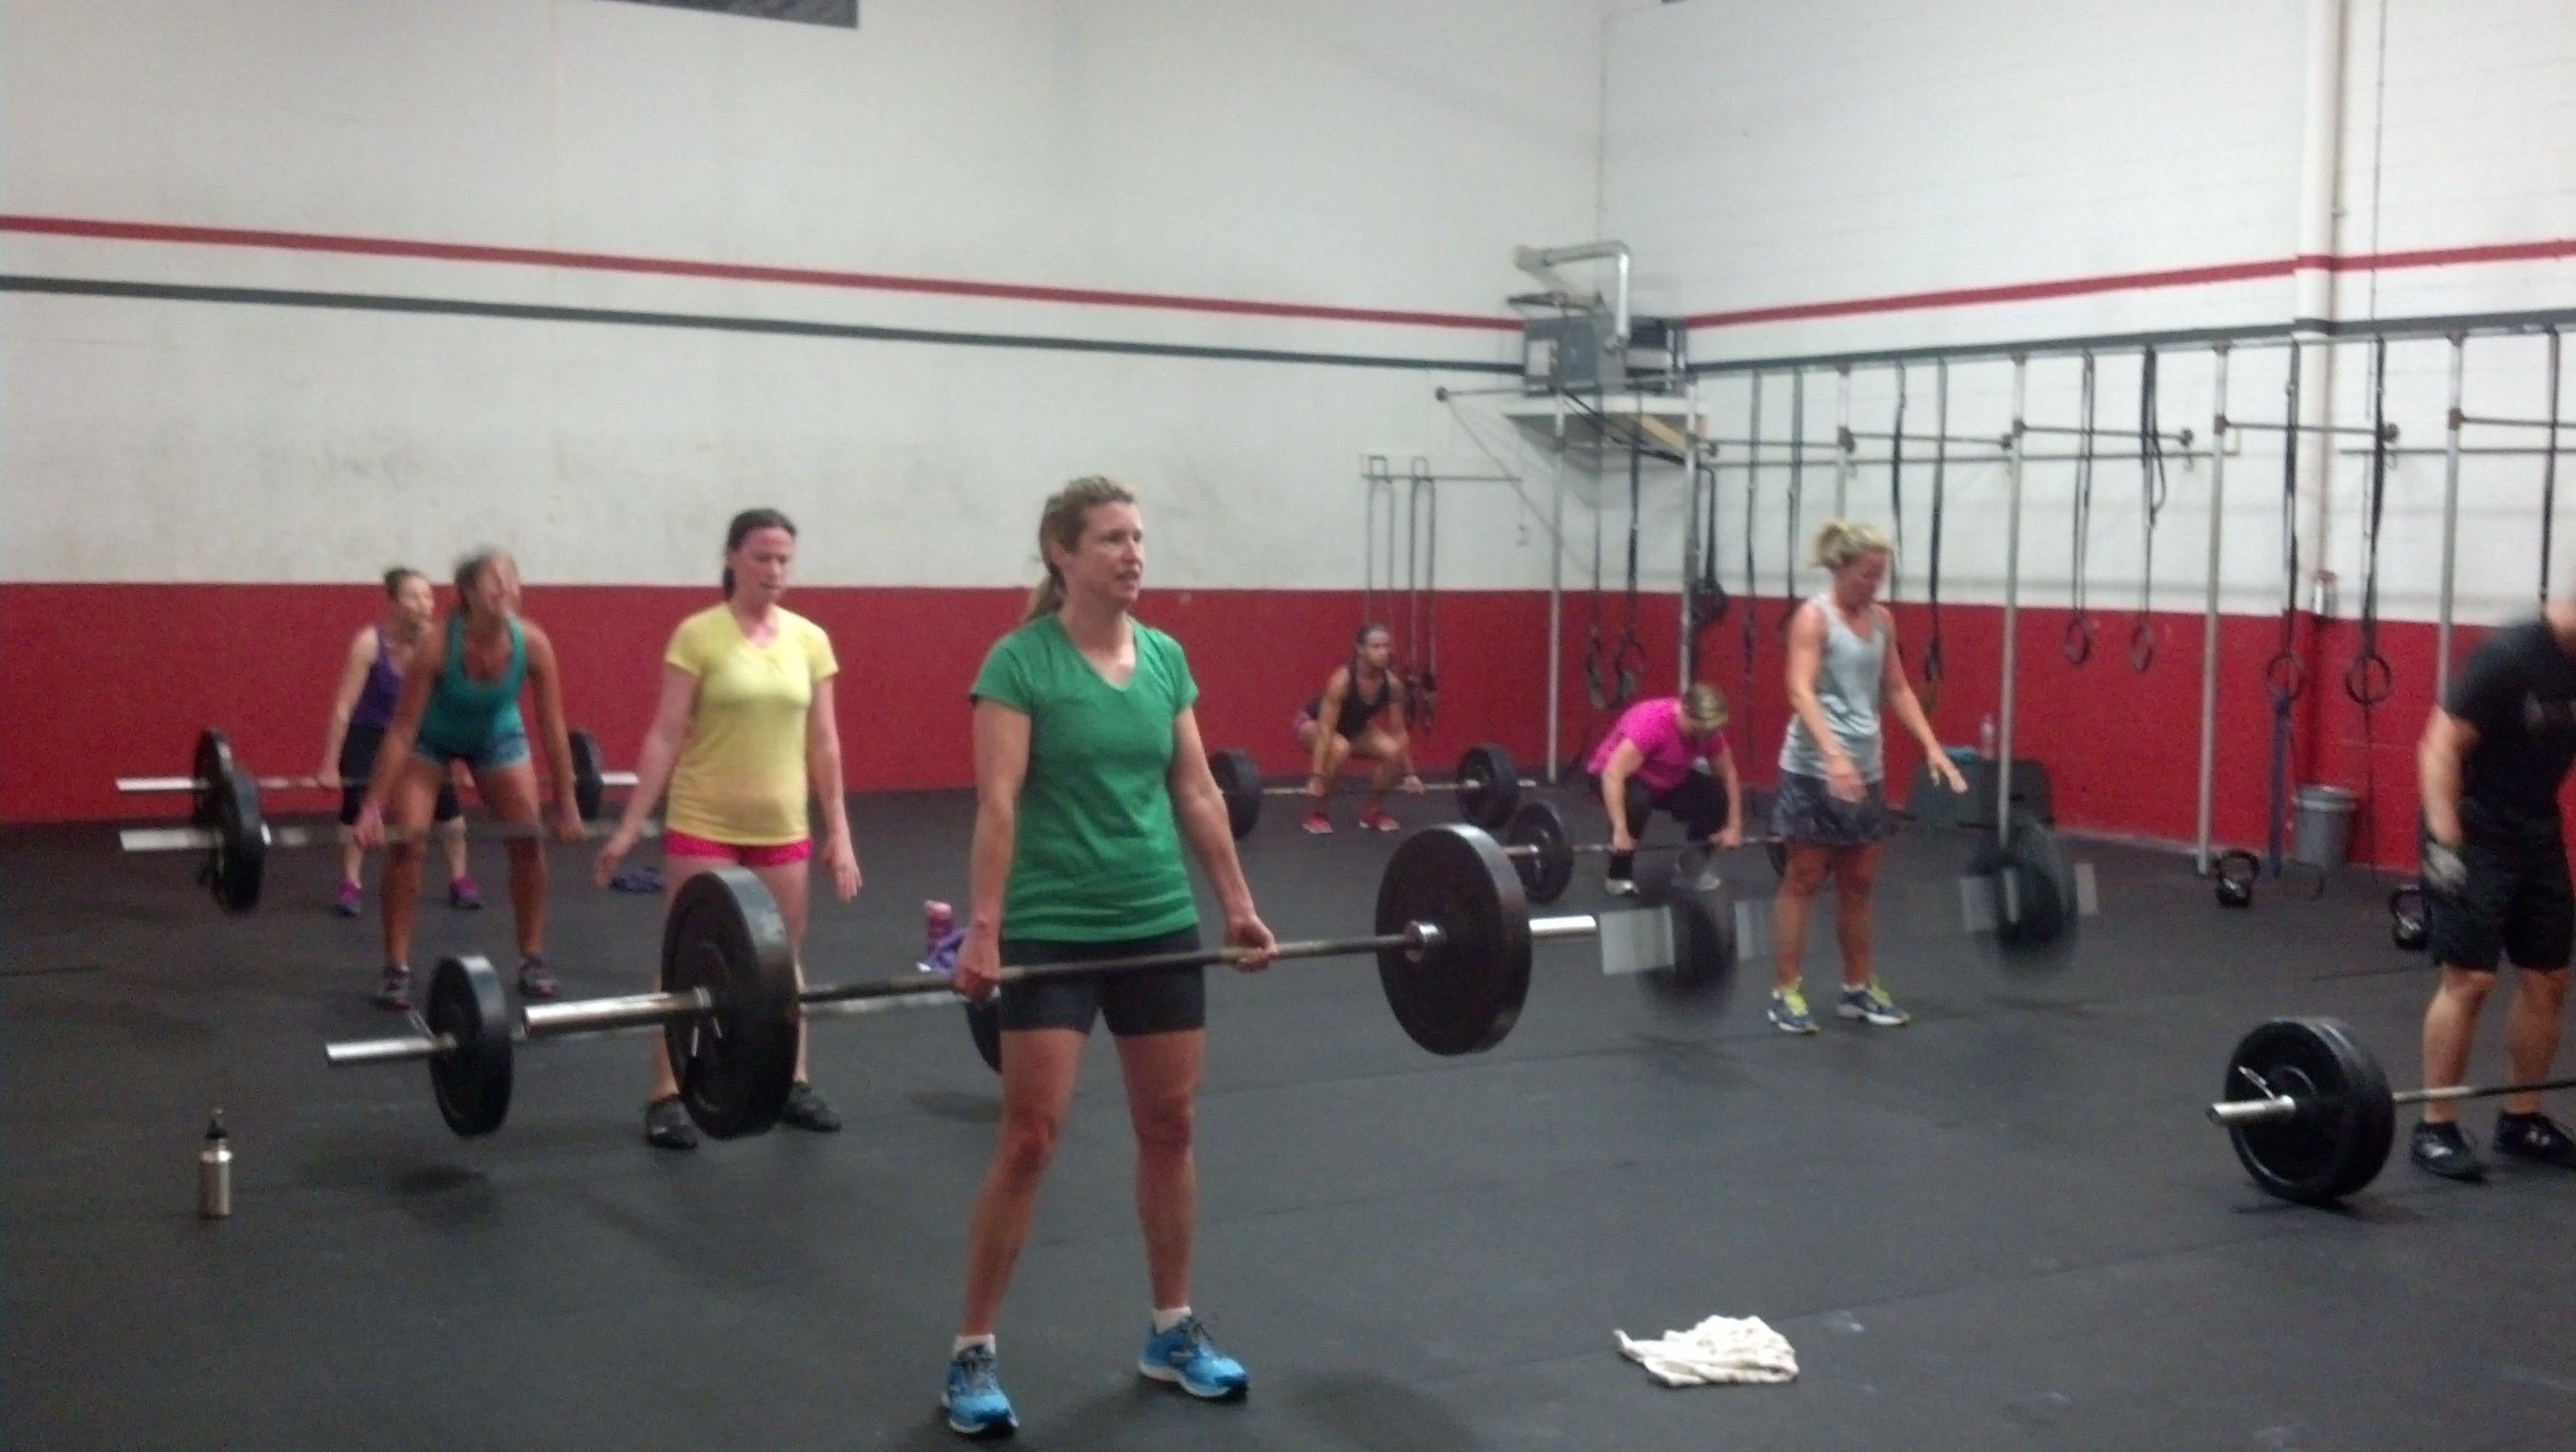 Sunday, August 18 WOD